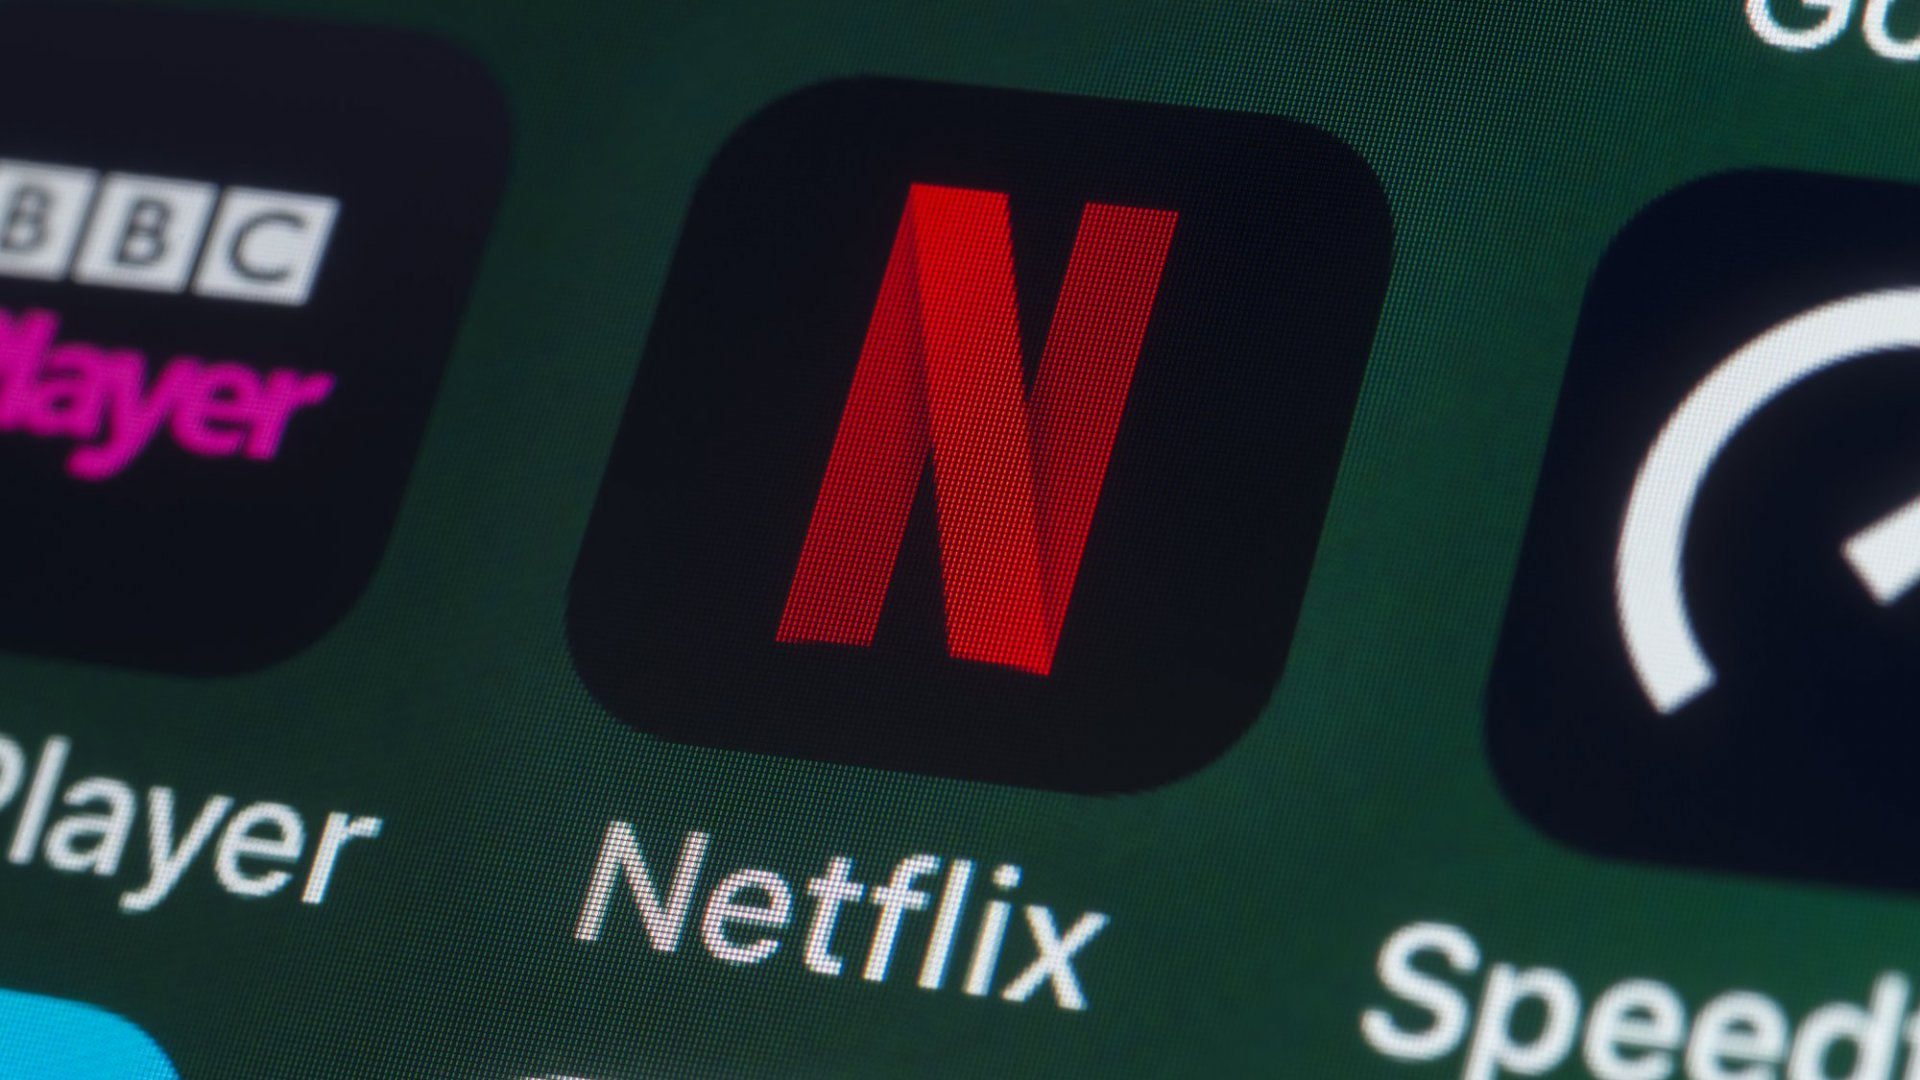 Netflix Made a Big, Risky Change in 2018. Now We Know How It All Turned Out